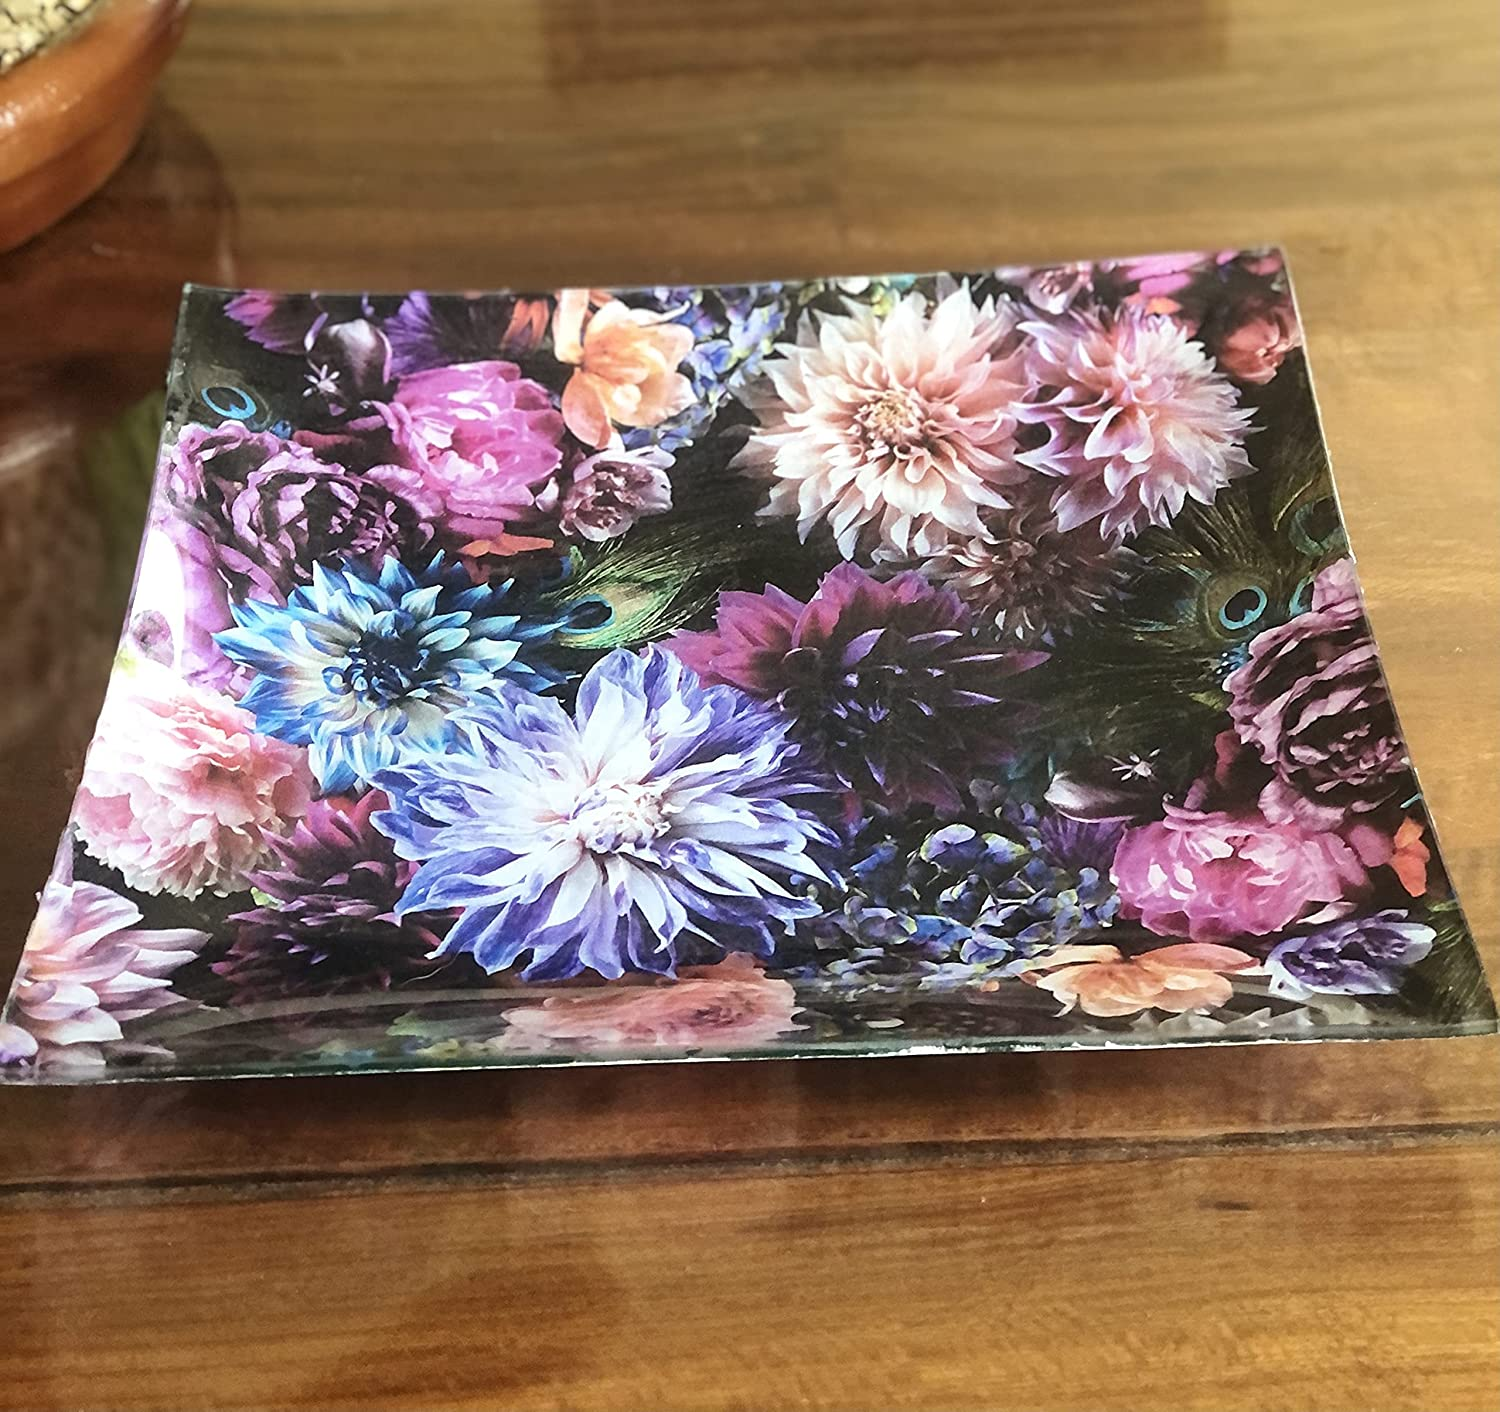 Max 54% OFF Hand Decoupage Floral Glass Bombing free shipping Serving Platter x12 -12 - Inch Decor